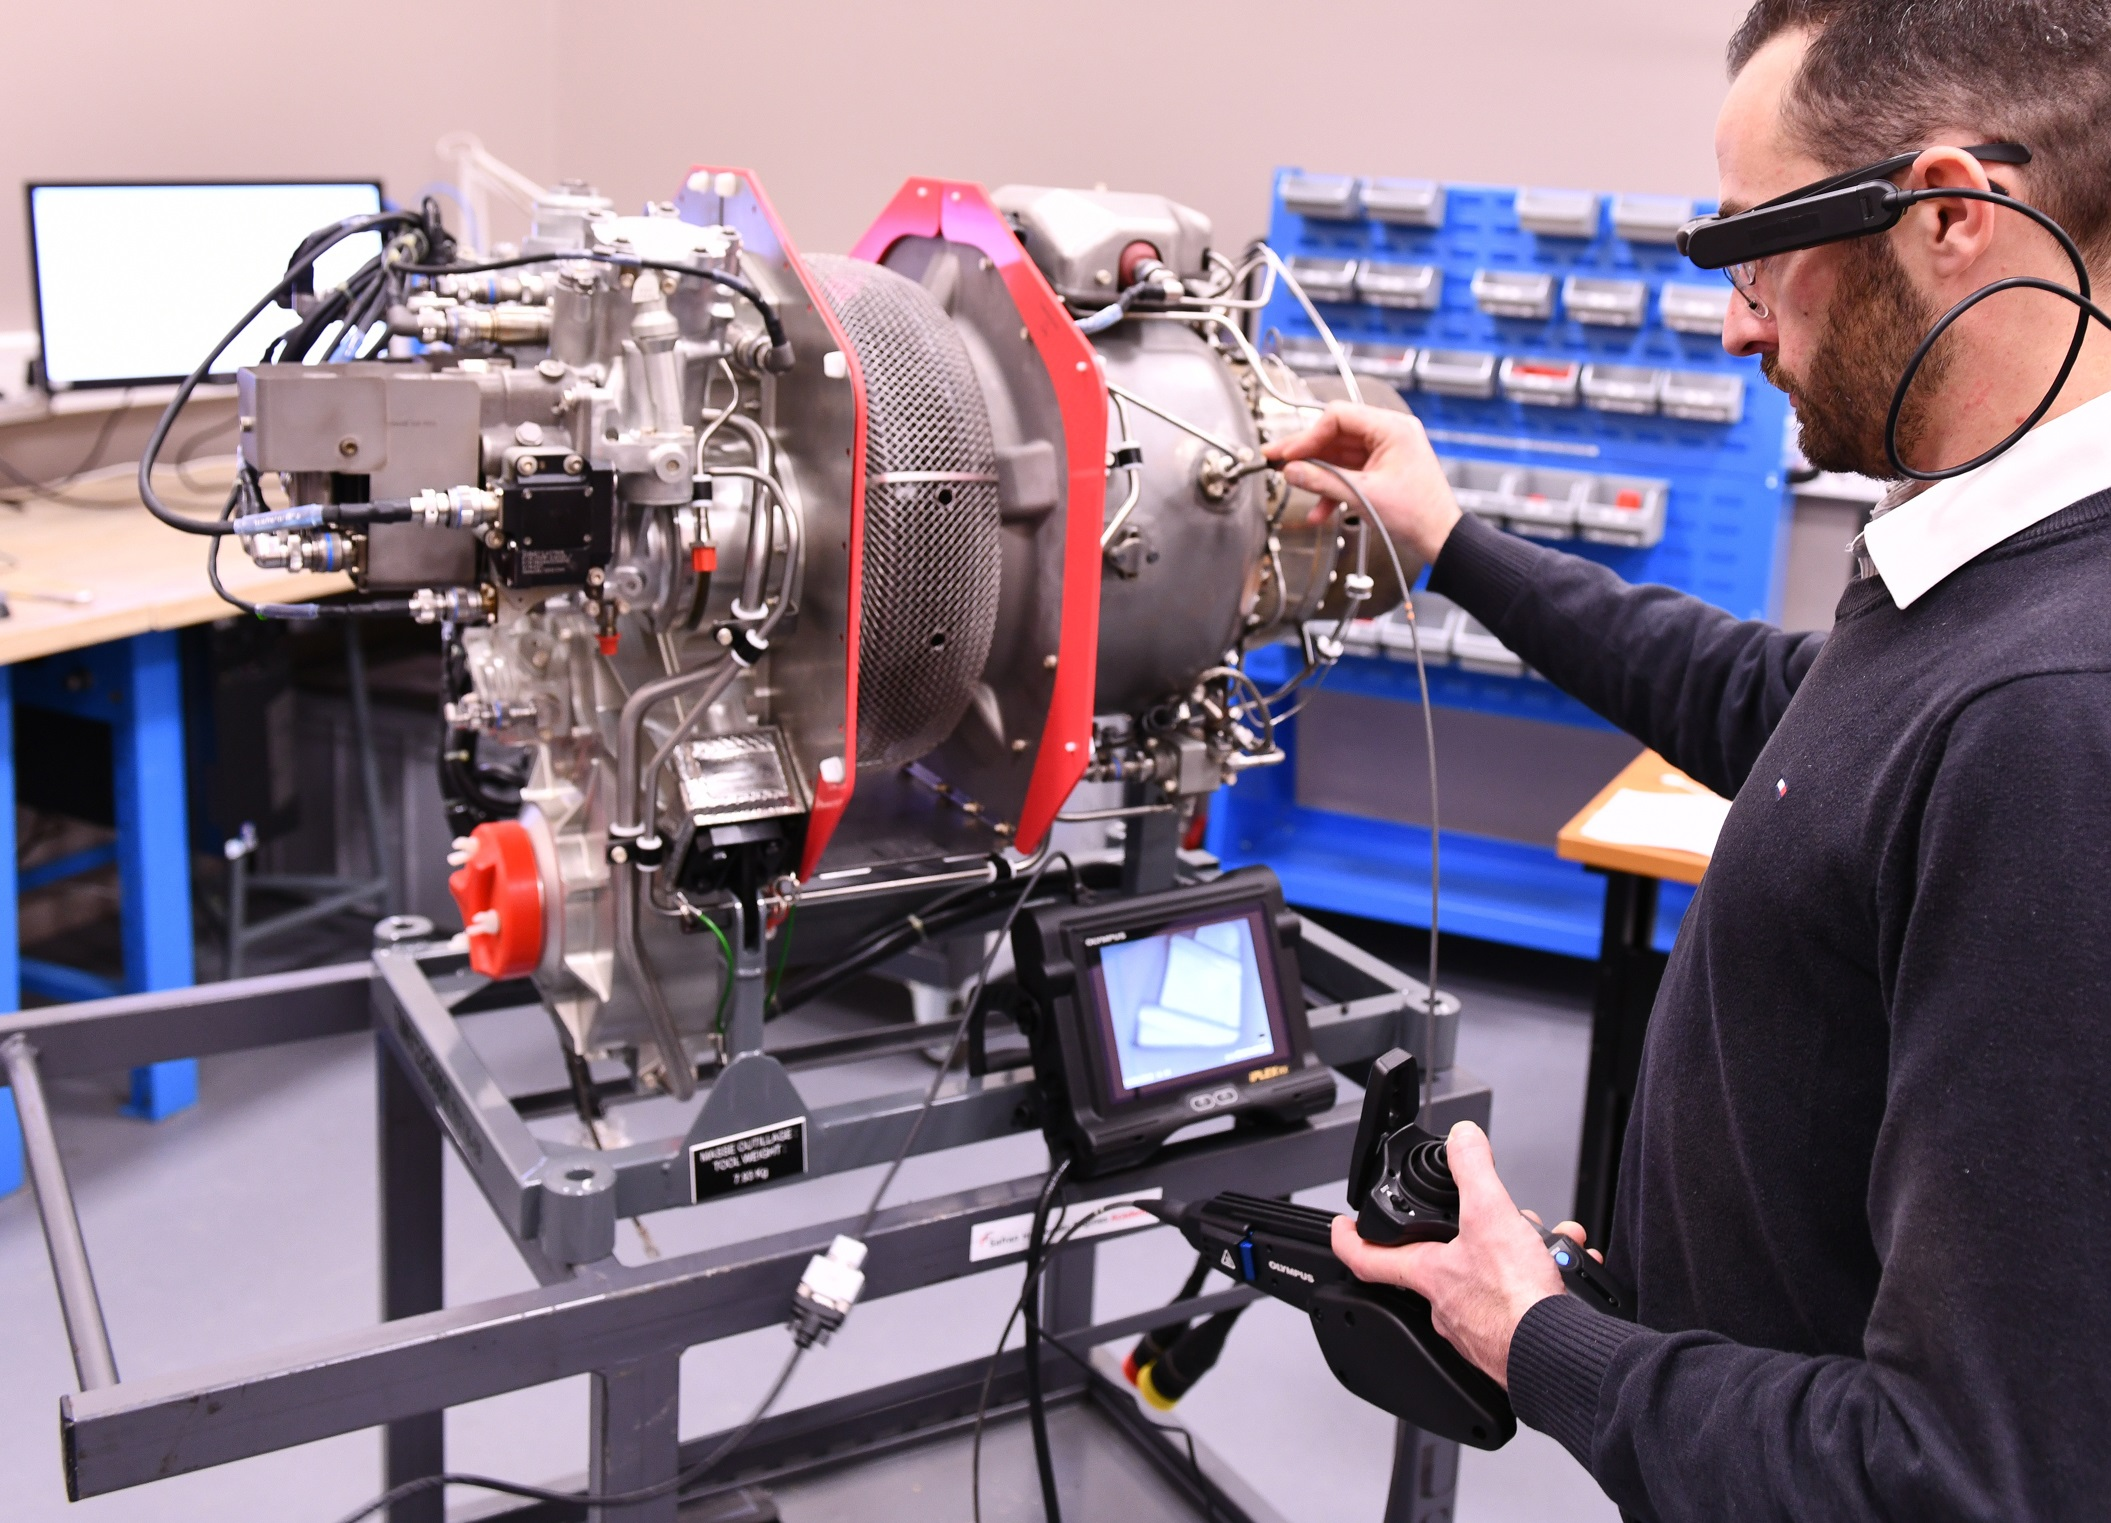 Safran Helicopter Engines Introduces Expert Link, New Remote Assistance Service